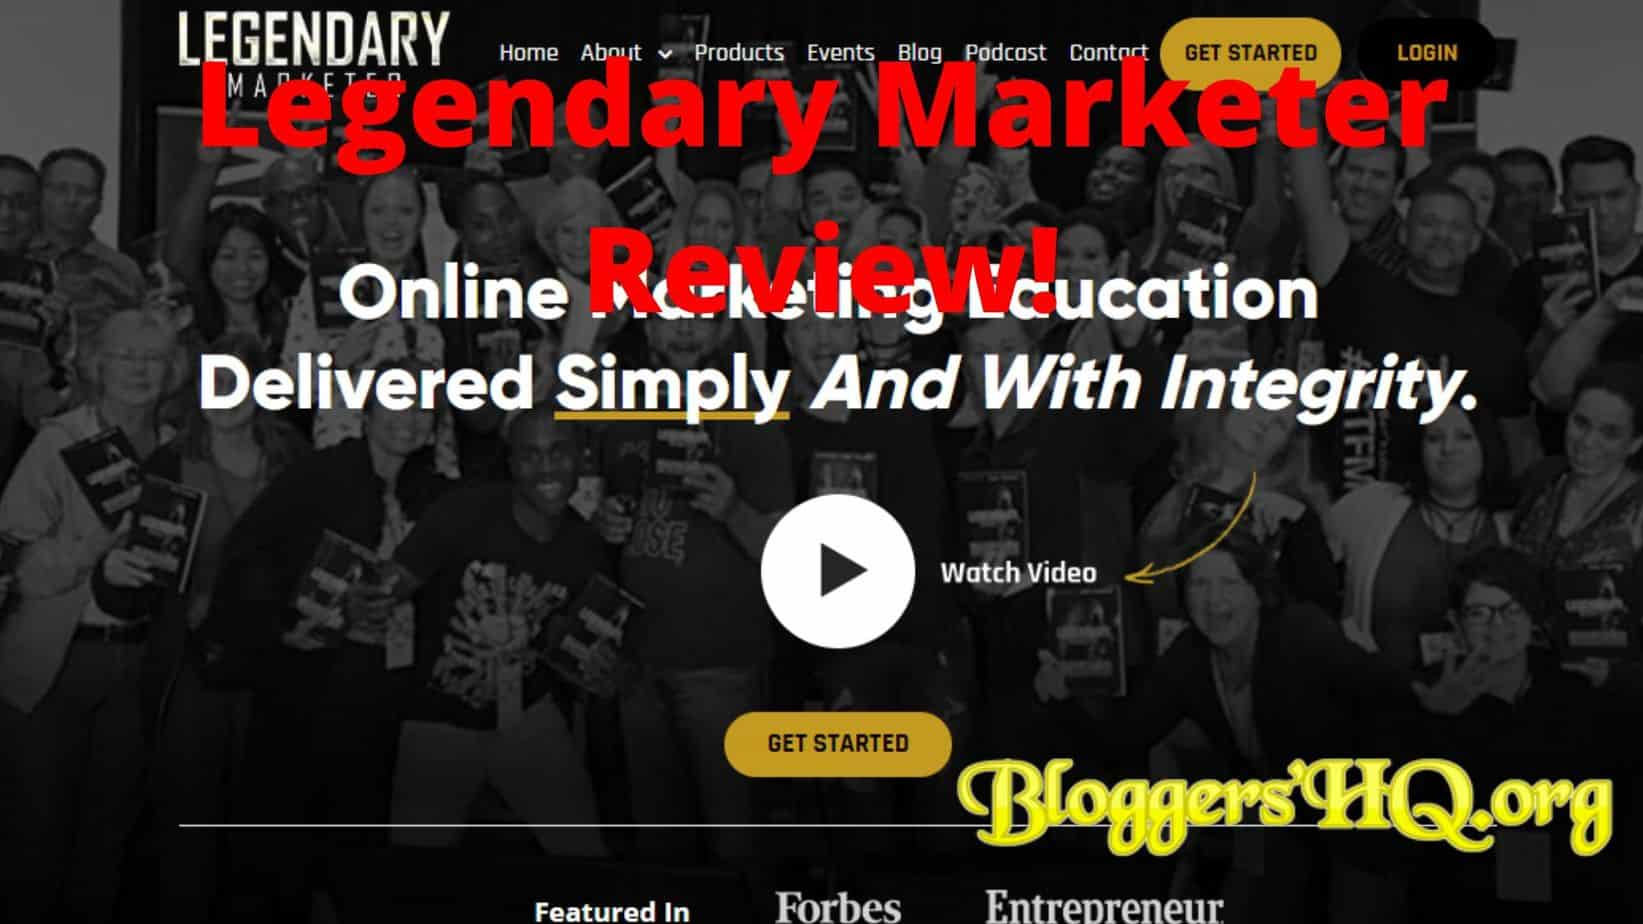 Legendary Marketer Coupons For Students 2020